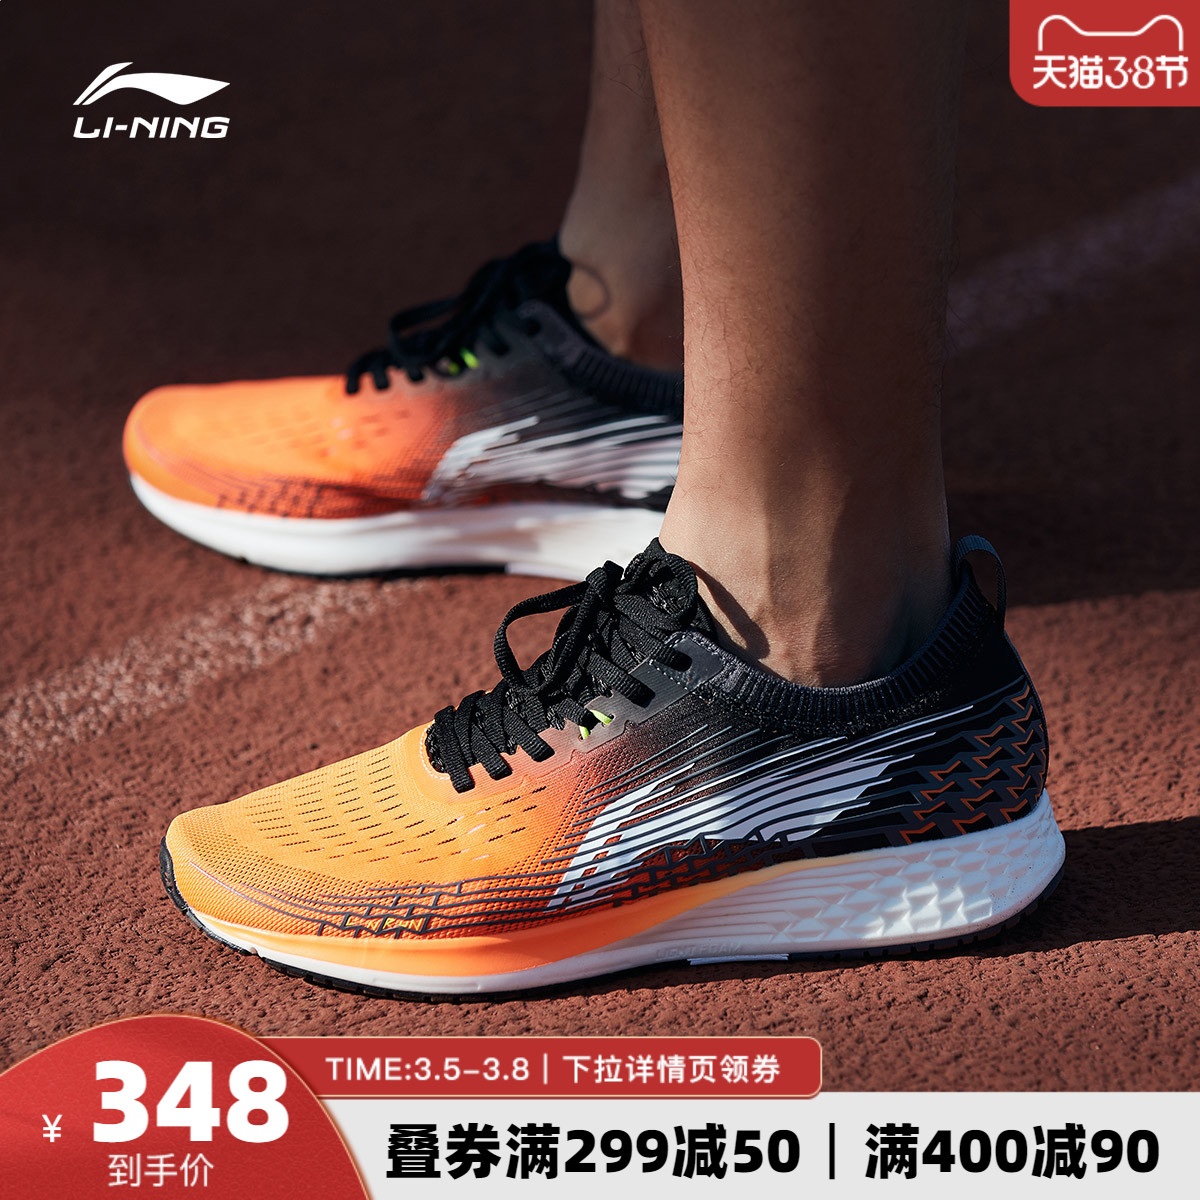 Li Ning running shoes men's shoes Red Rabbit 4th generation professional training shock absorption sports shoes flagship official marathon running shoes men